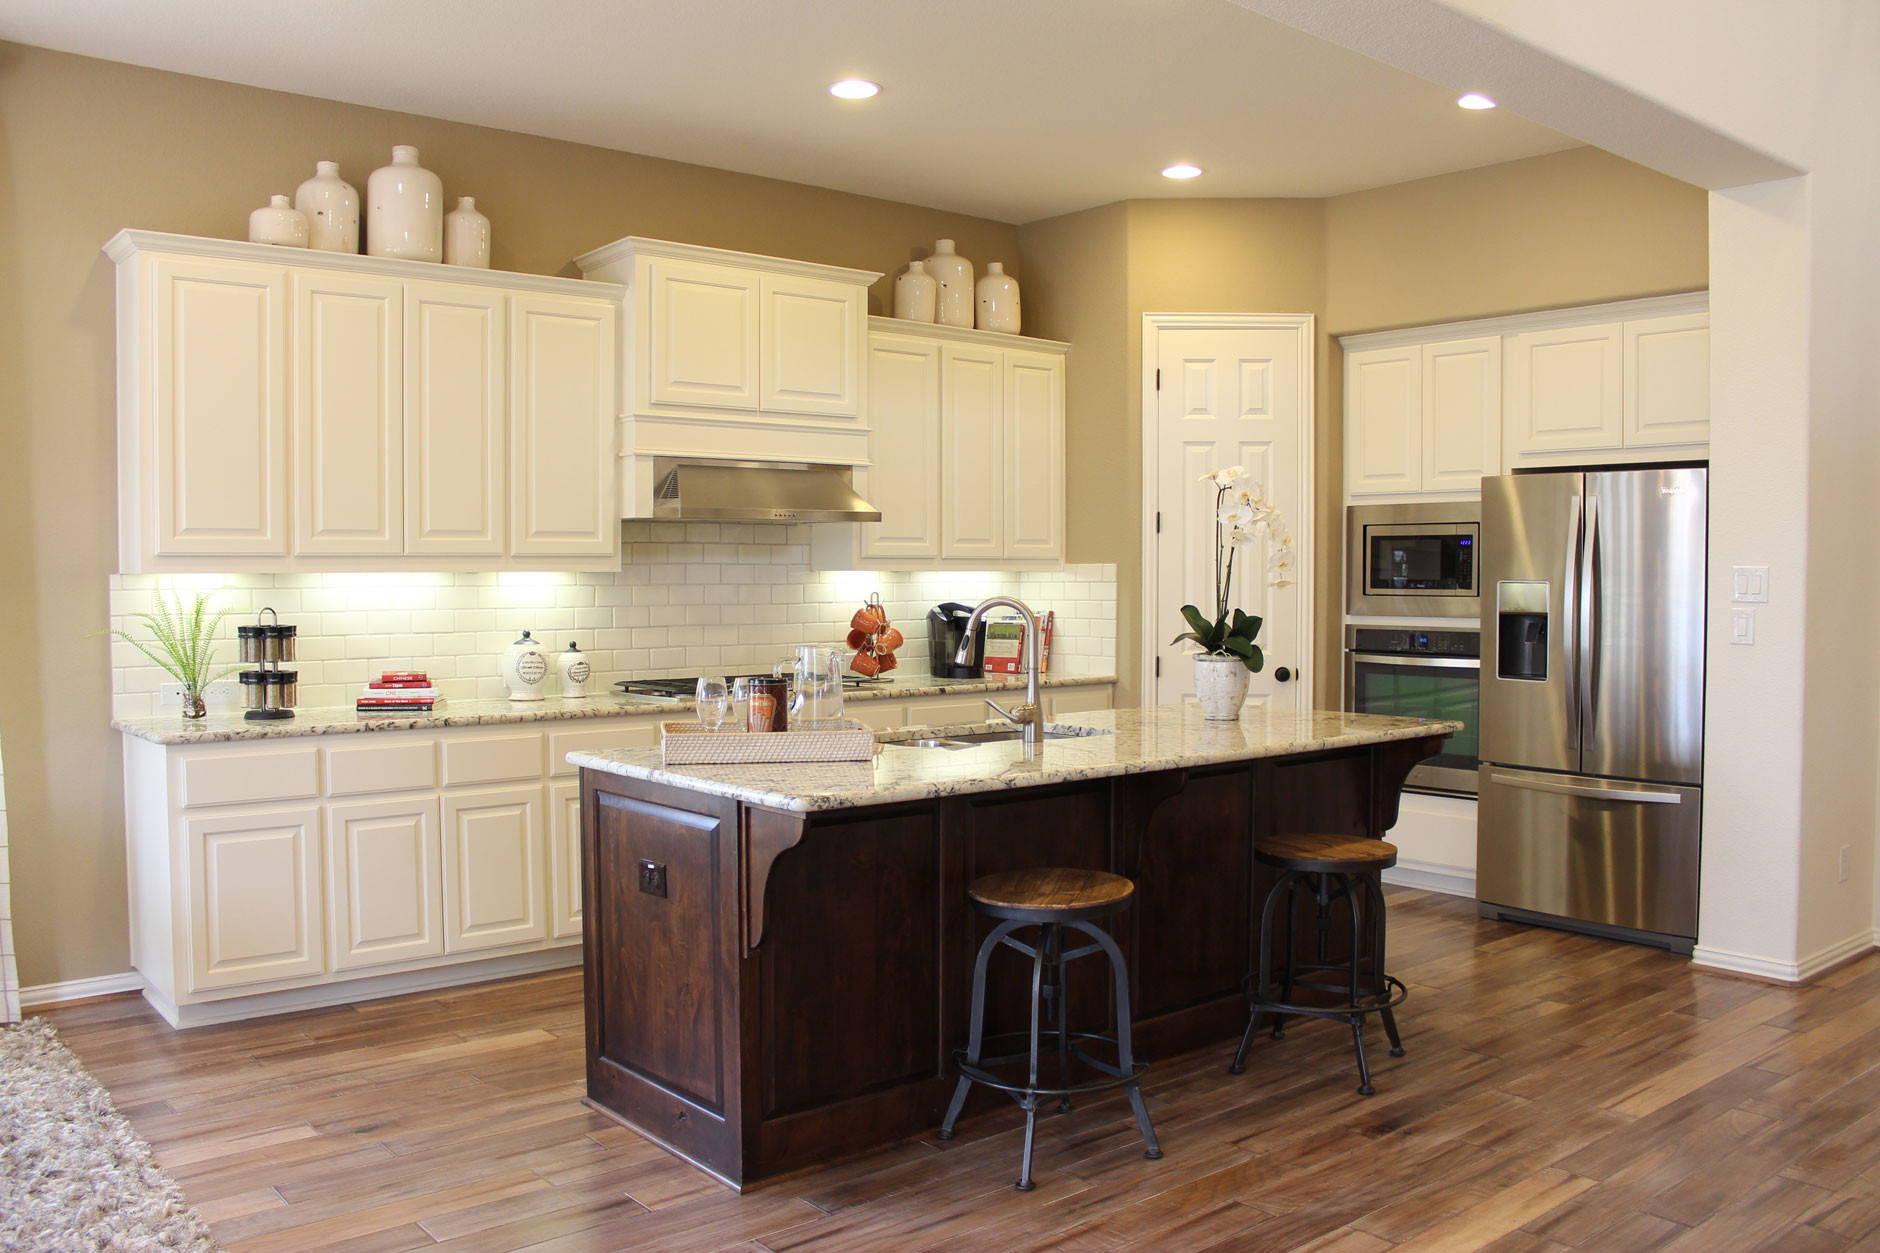 hardwood floor color with white cabinets of 27 best of kitchen cabinet stain colors pics 22145 cooldir org with kitchen cabinet stain colors awesome white kitchen cabinet and hardwood floor binations hardwoods pics of 27